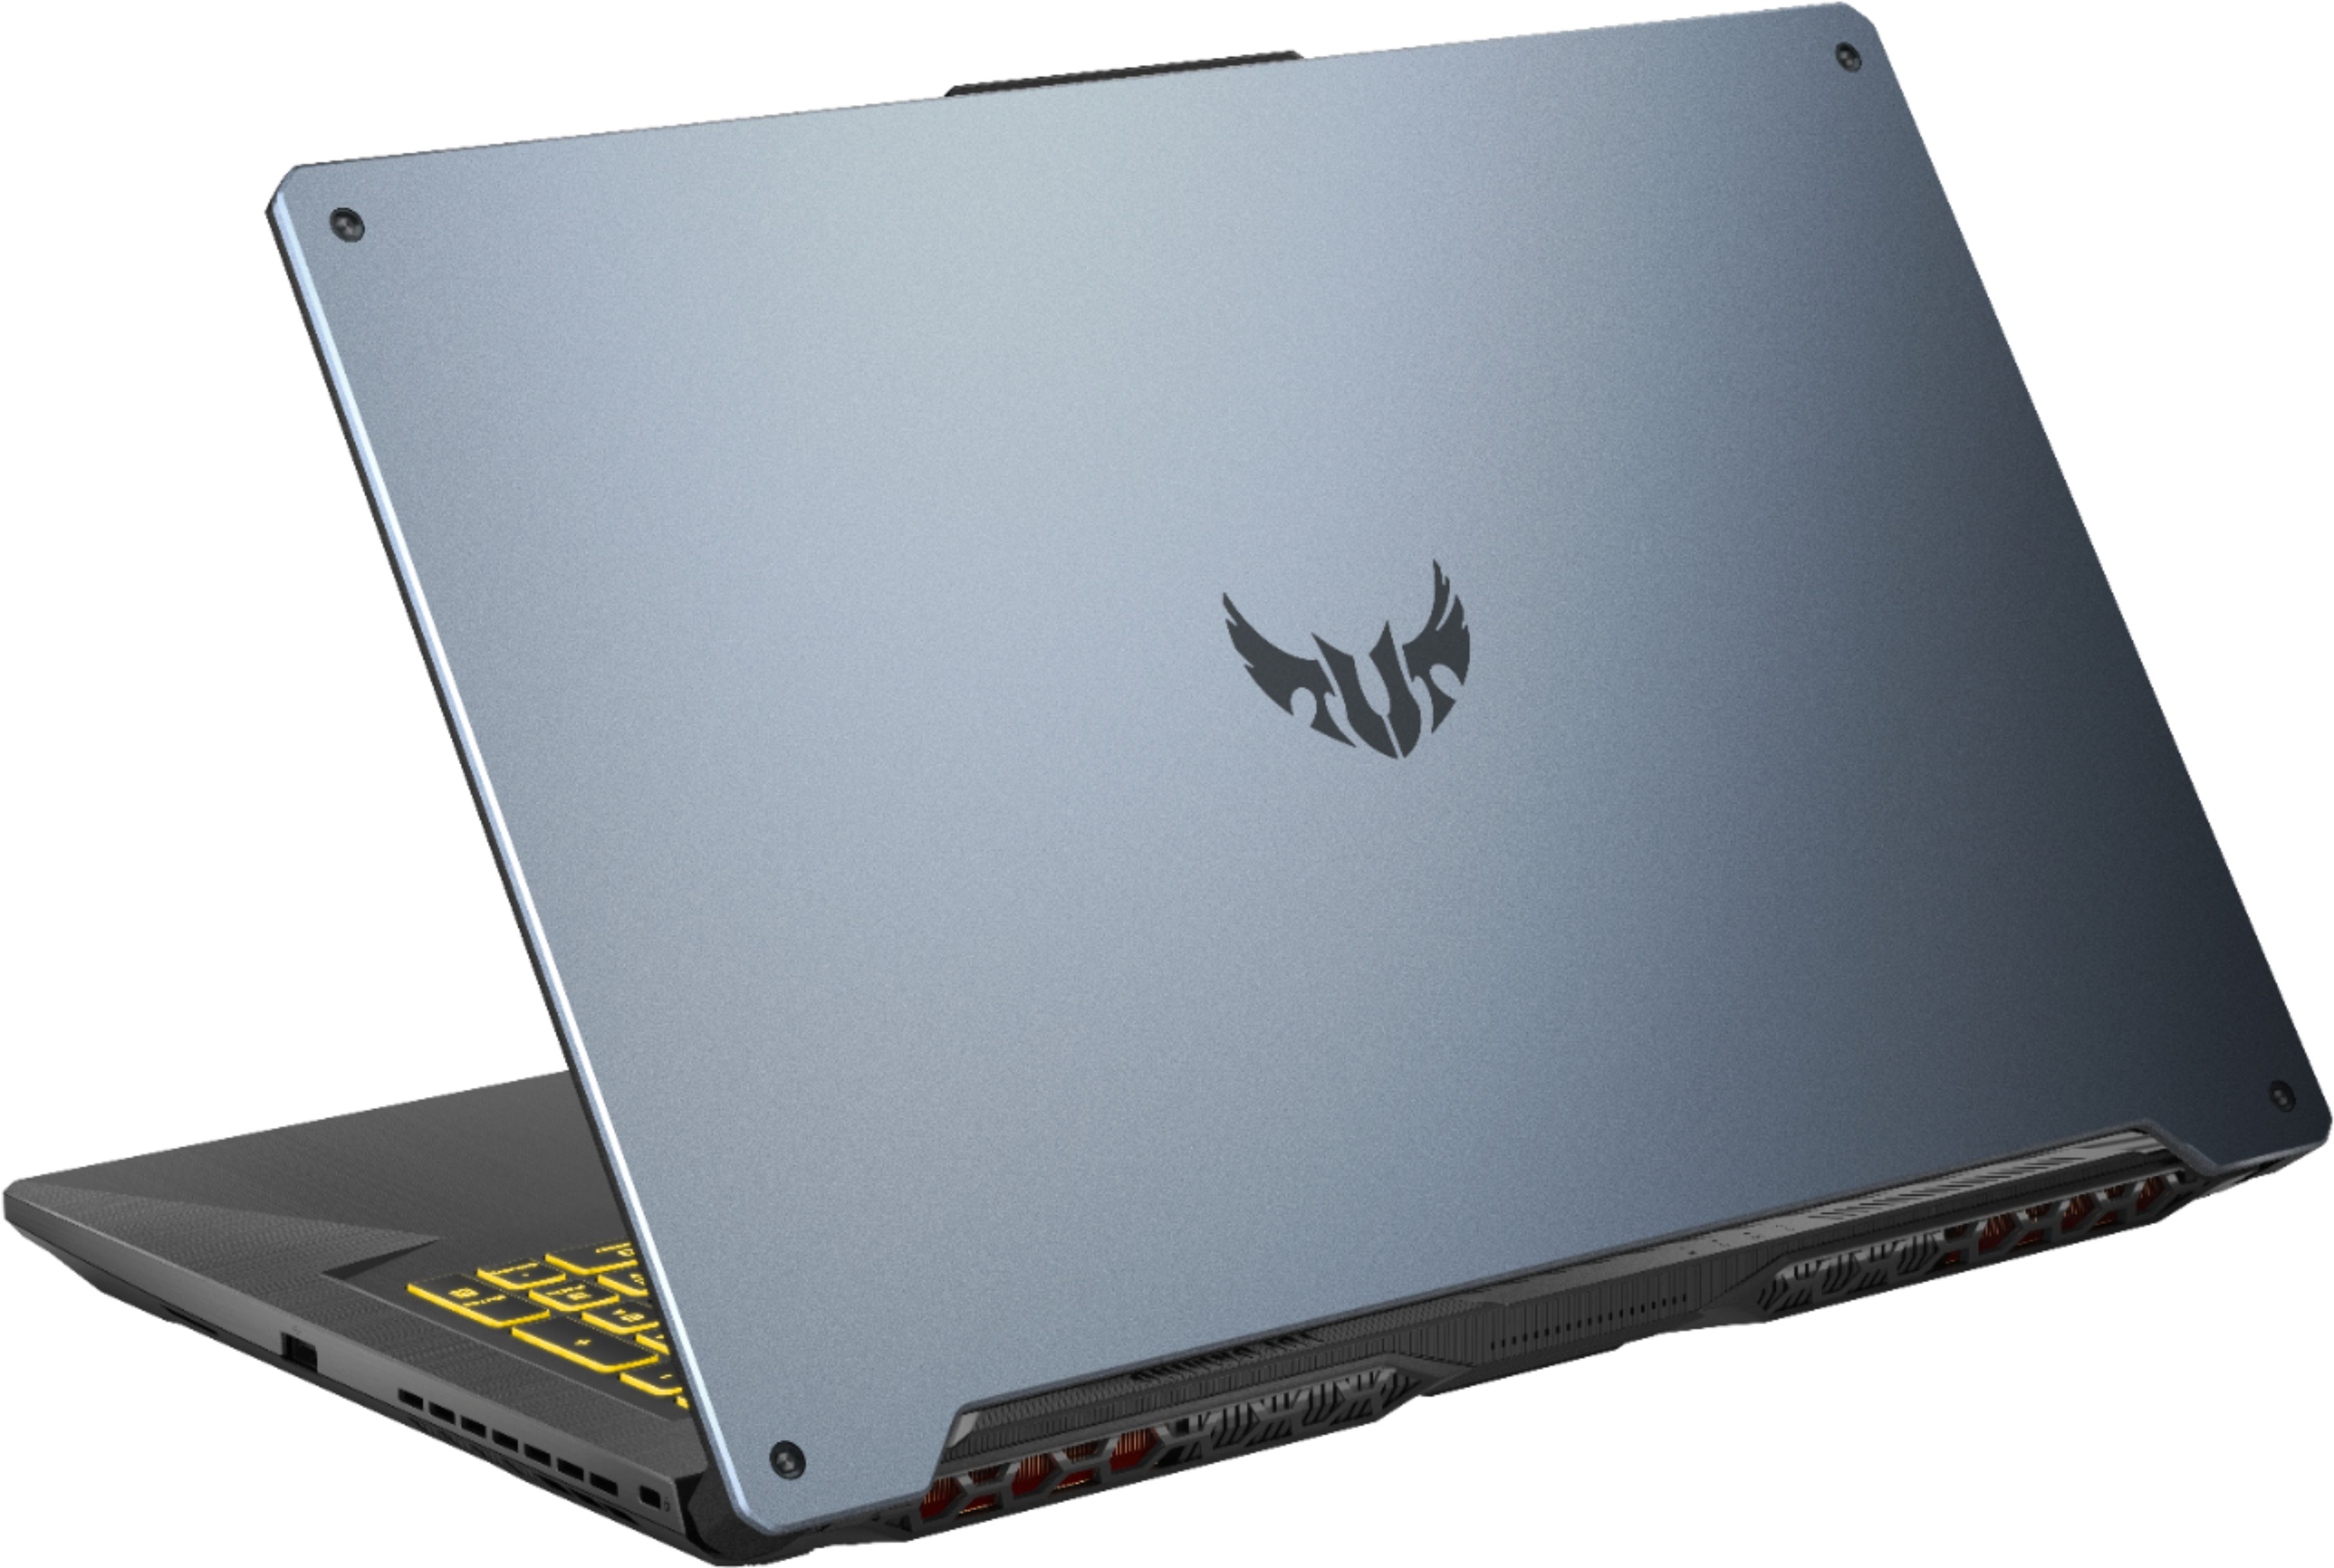 """Alt View Zoom 1. ASUS - TUF 17.3"""" Gaming Notebook - AMD Ryzen 7 4800H 16GB Memory - NVIDIA GeForce GTX 1660Ti - 1TB Solid State Drive - Fortress Gray."""